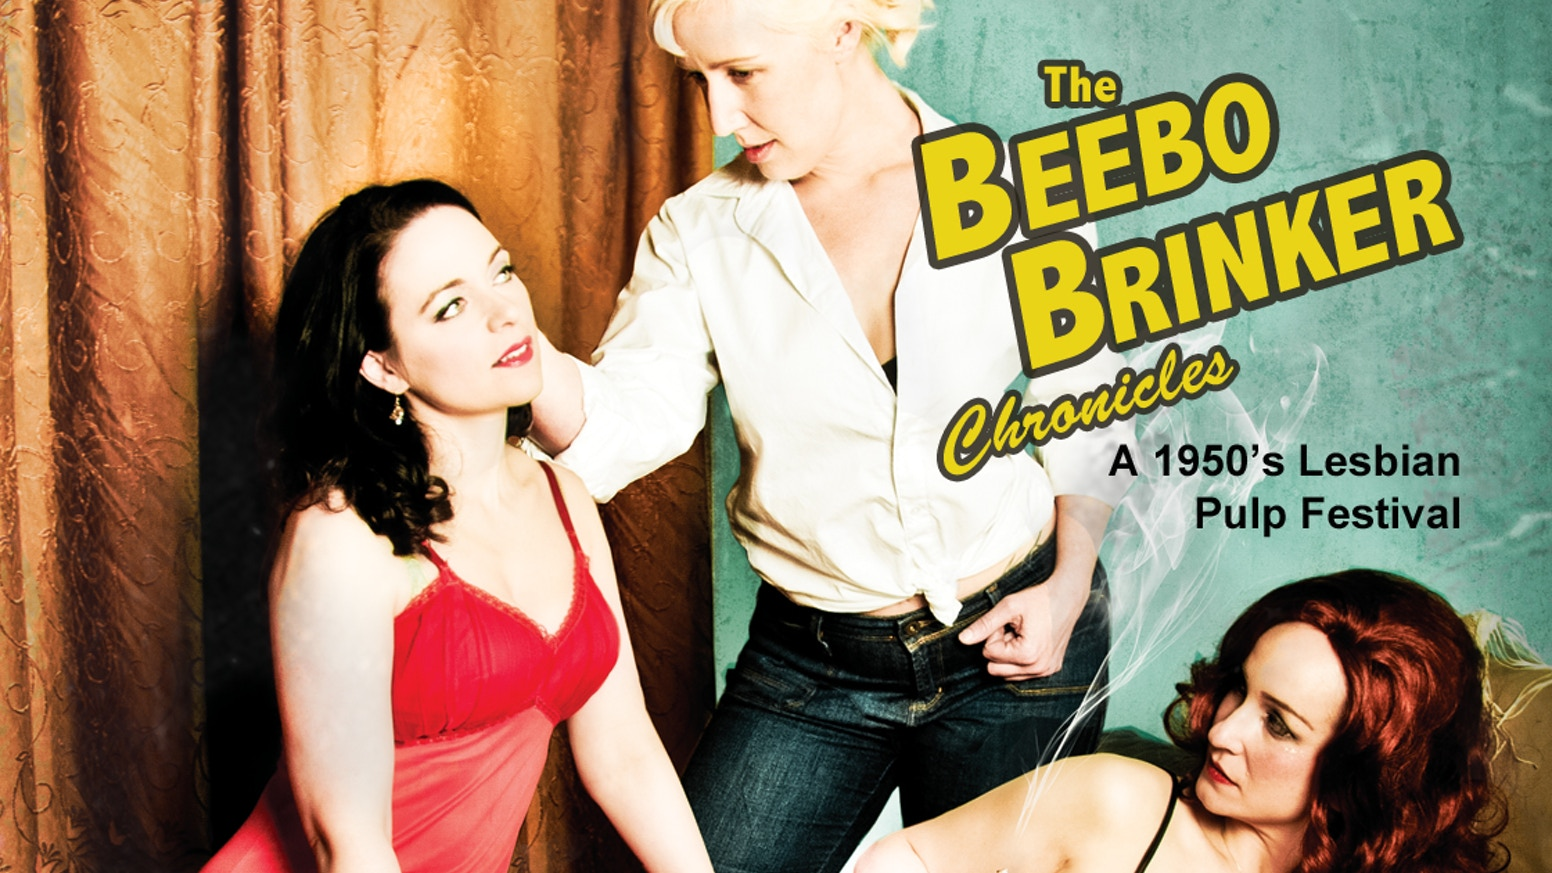 THE BEEBO BRINKER CHRONICLES: A 1950s Lesbian Pulp Festival!